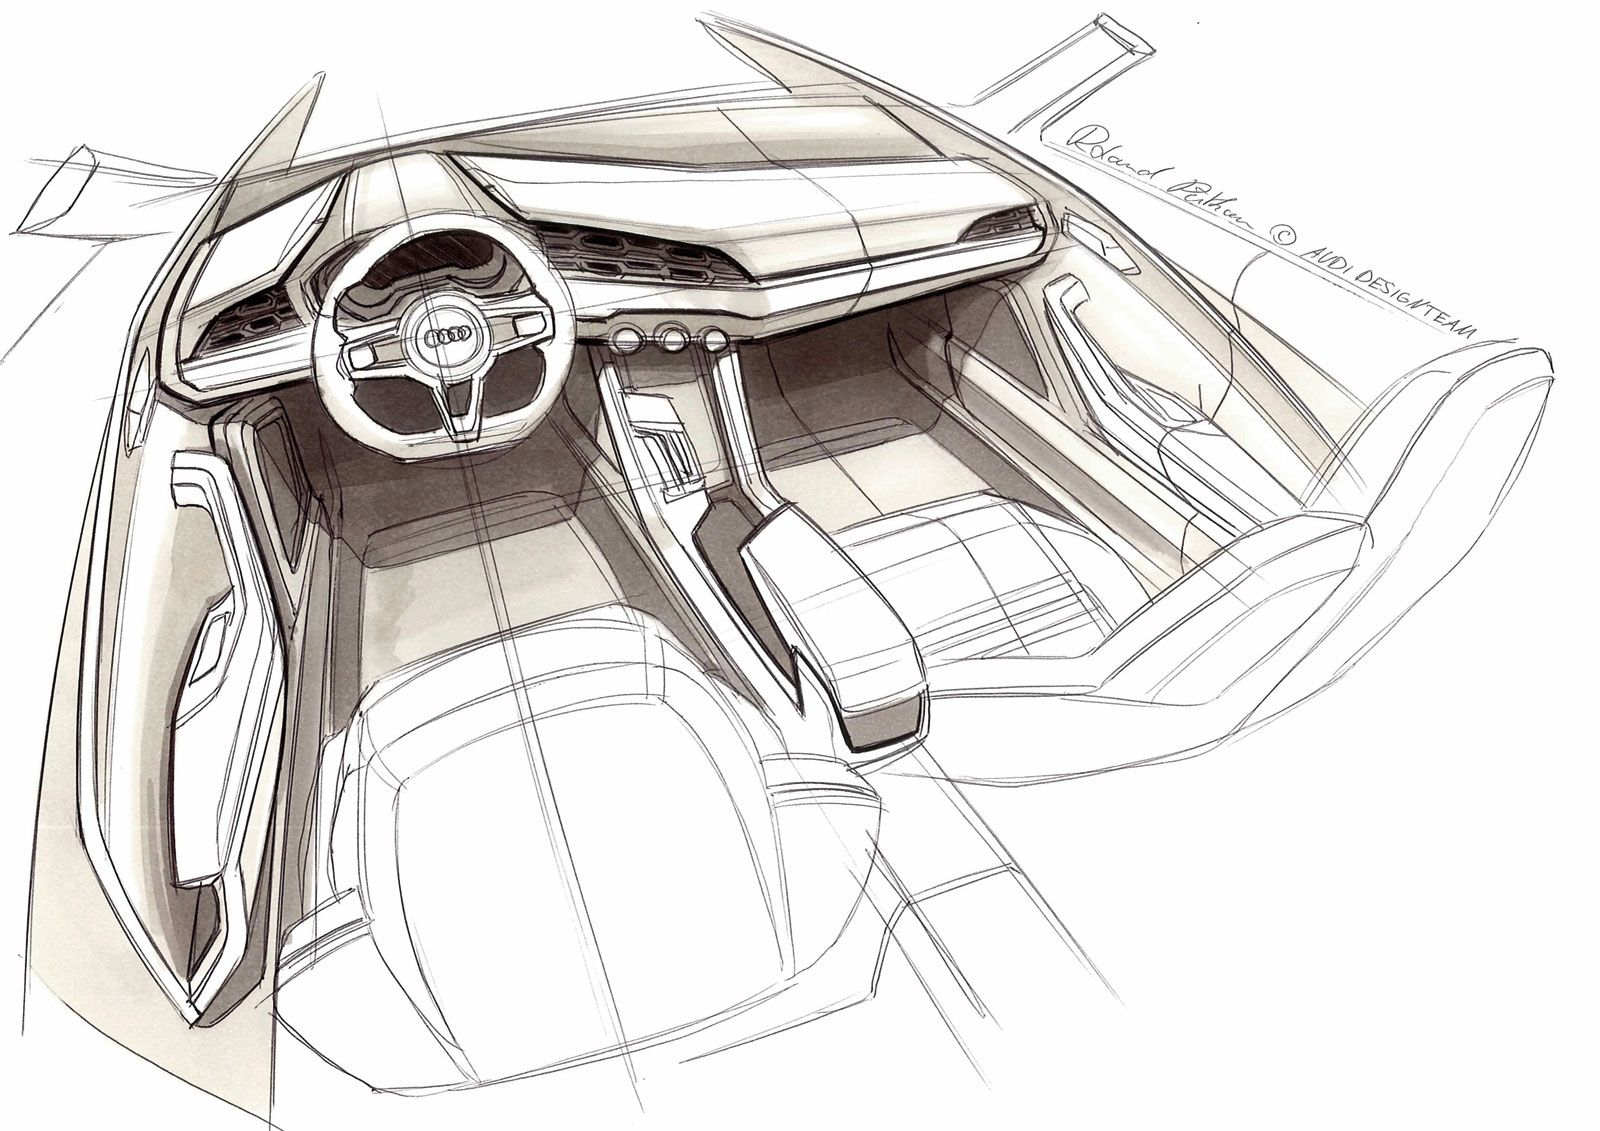 Audi Crosslane Coupe Concept Interior Design Sketch Sketches